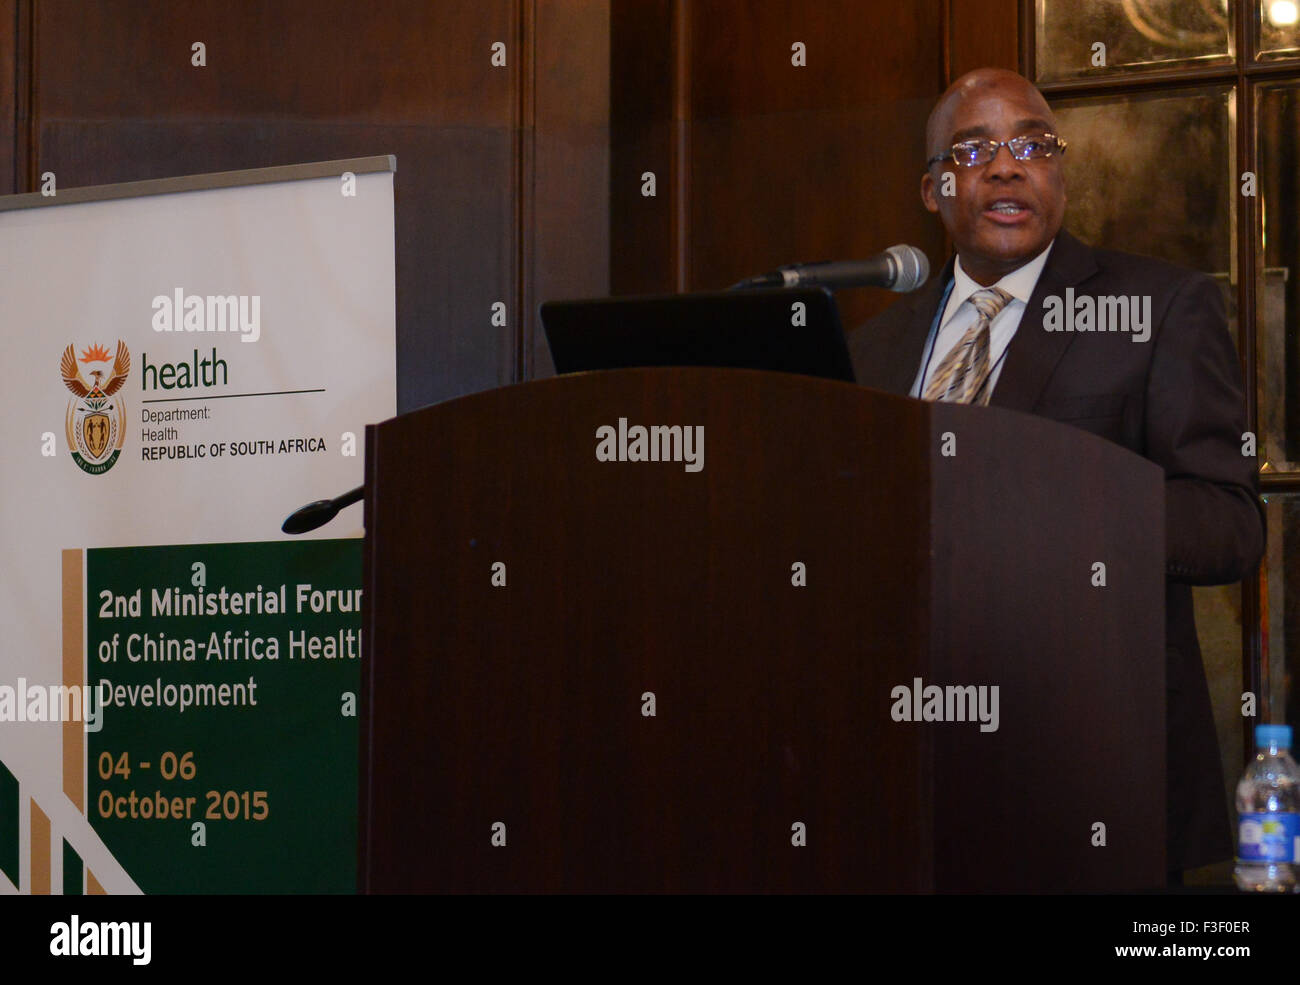 (151006) -- CAPE TOWN, Oct. 6, 2015 (Xinhua) -- South African Health Minister Aaron Motsoaledi addresses the Second - Stock Image